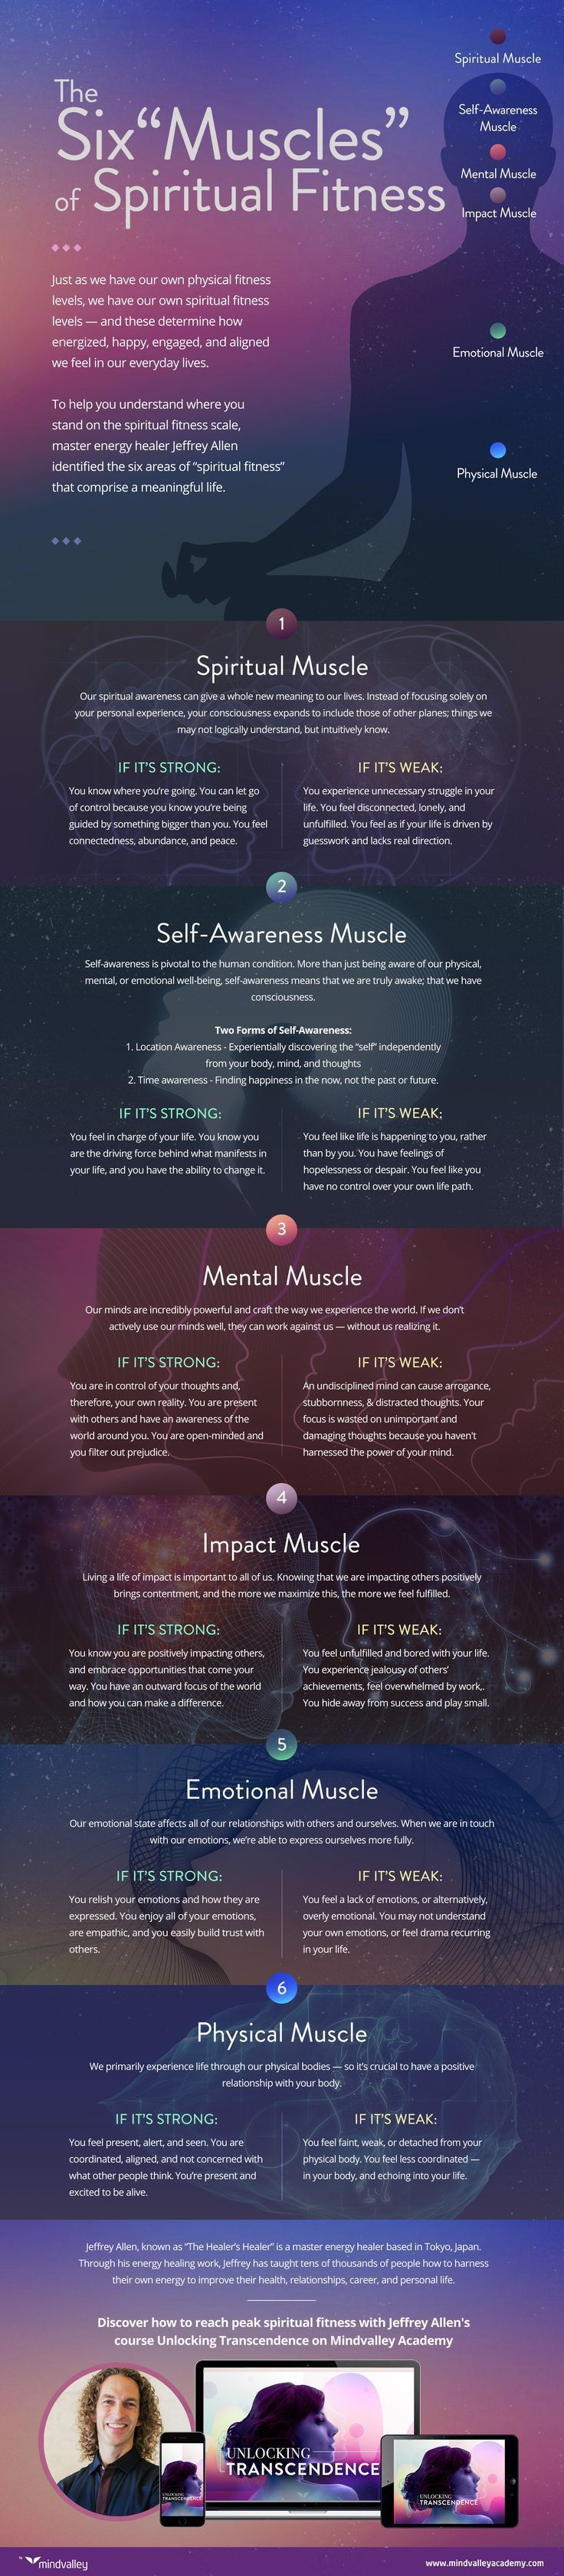 jeffrey allen 6 muscles of spiritual fitness infographic - Tap the pin if you love super heroes too! Cause guess what? you will LOVE these super hero fitness shirts!